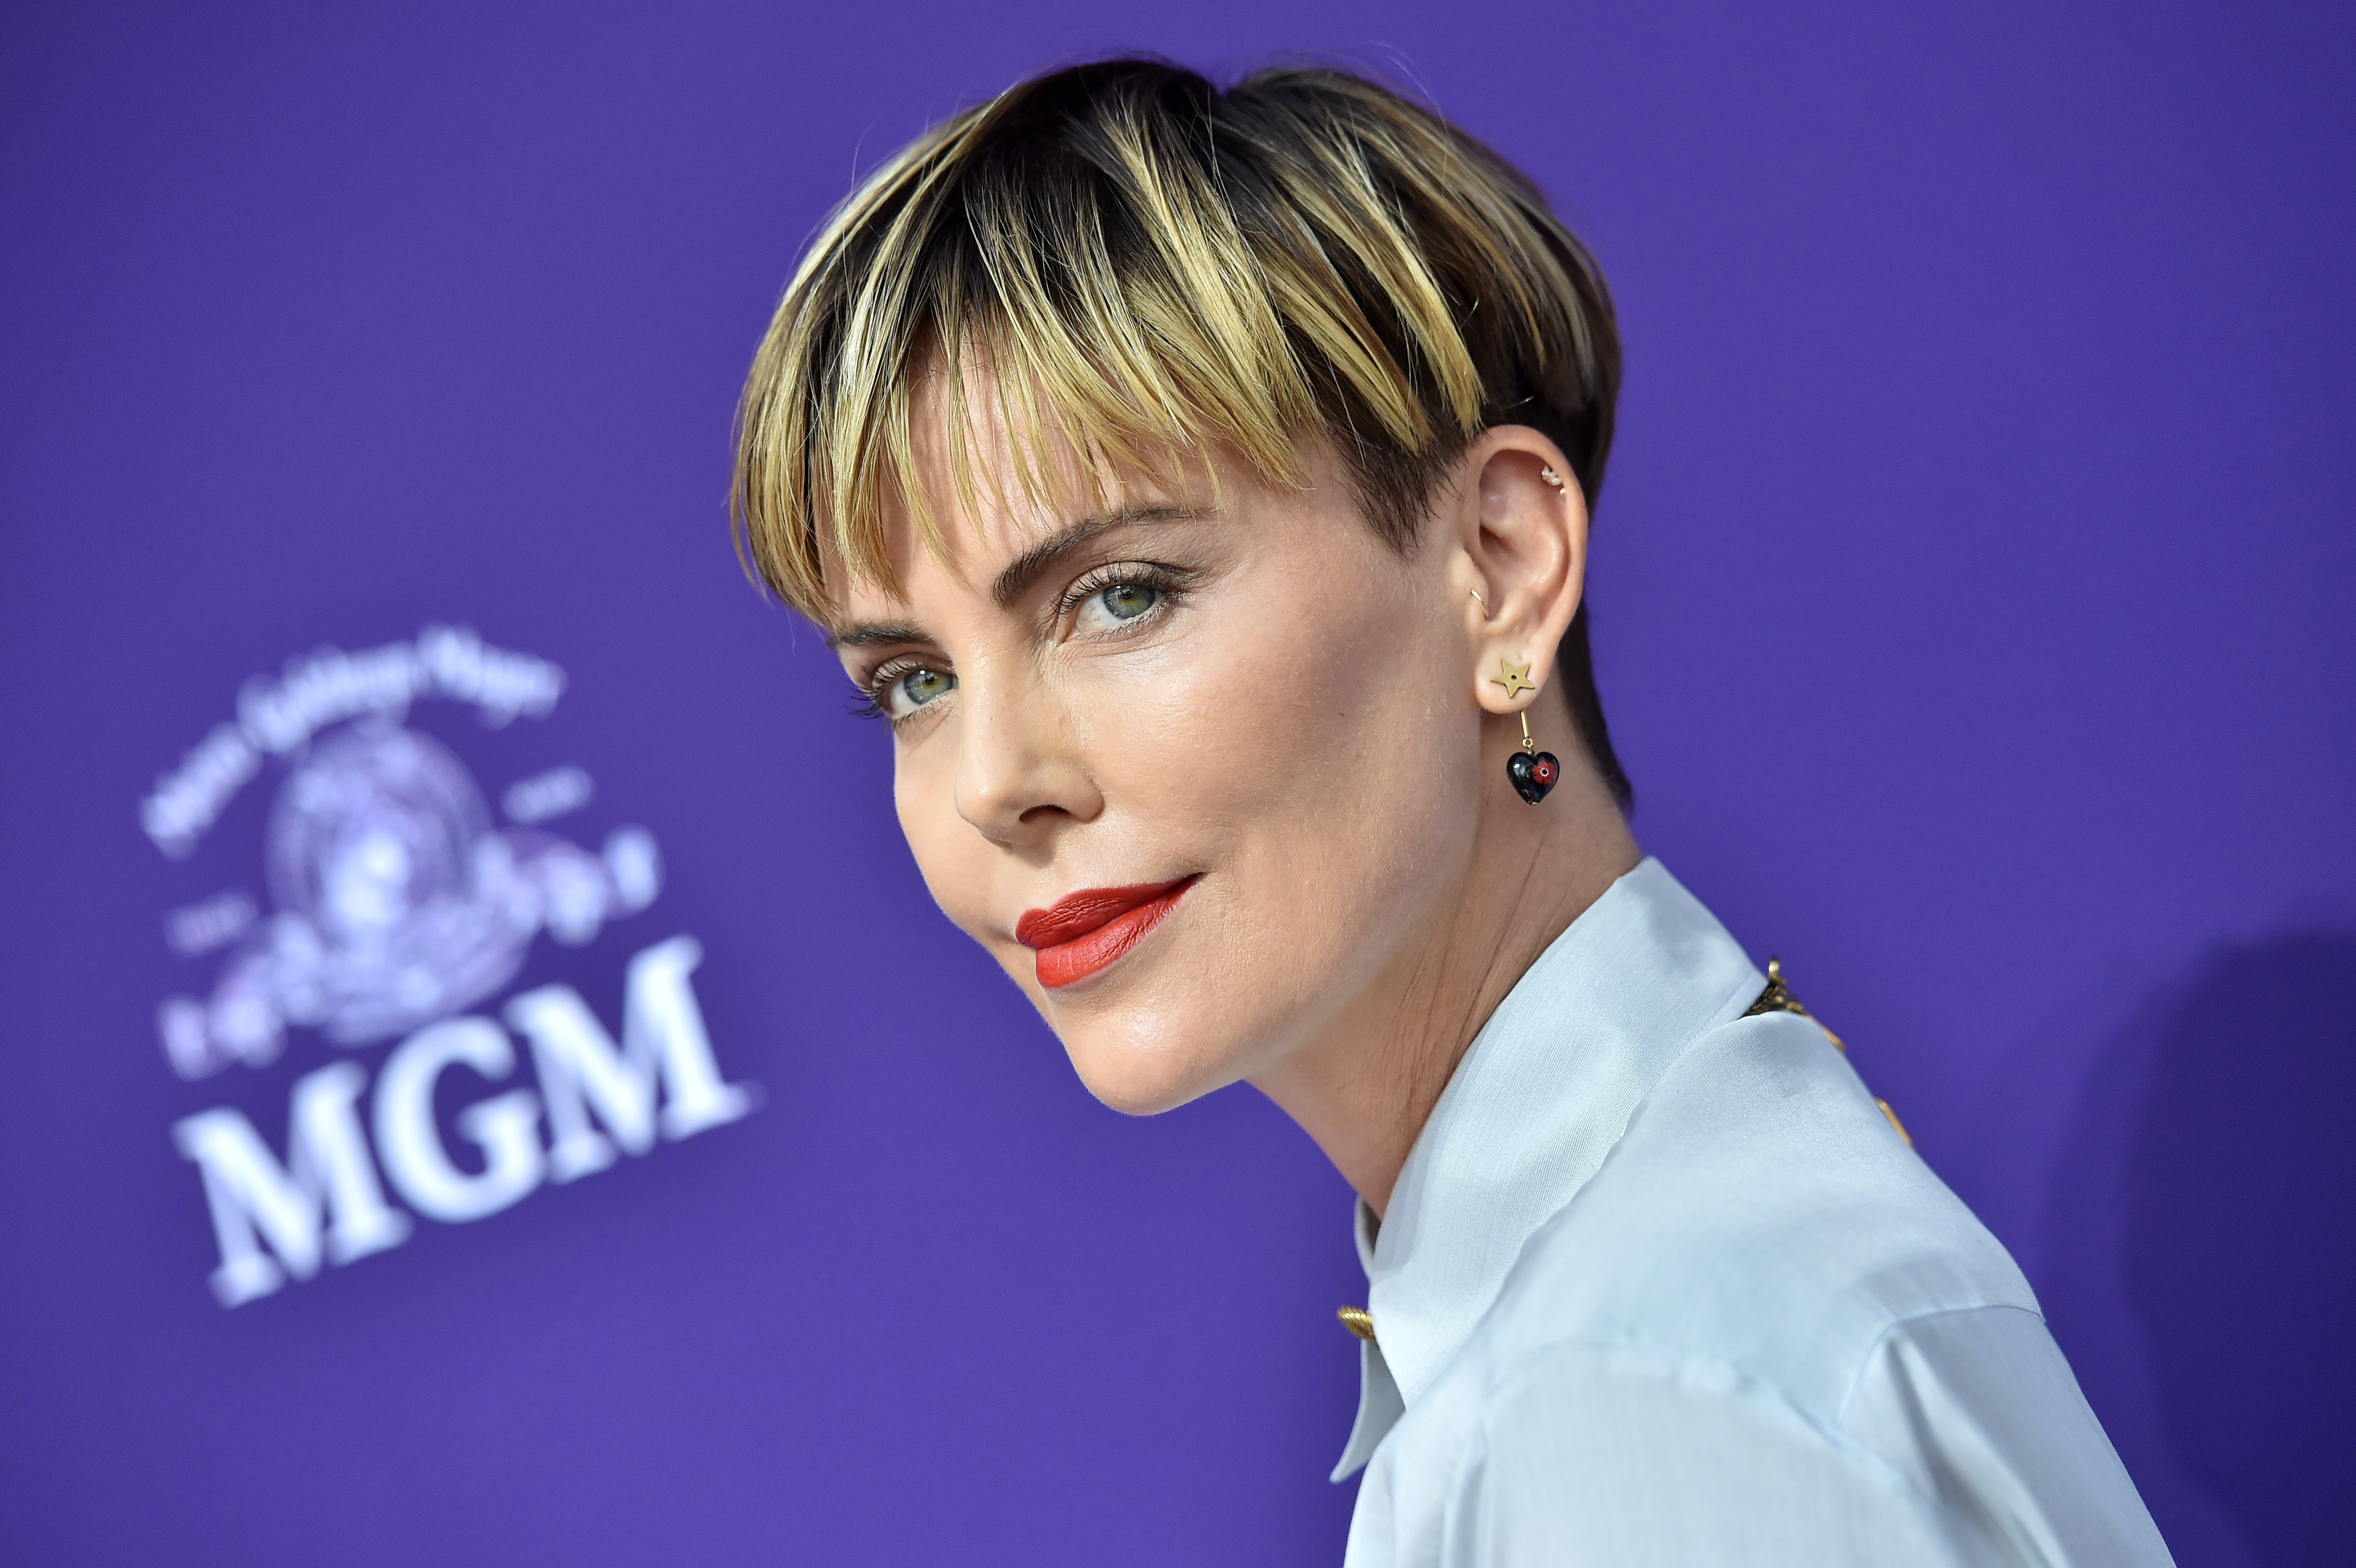 12 2020 Haircut Trends That Are Edgy Easy So Sophisticated